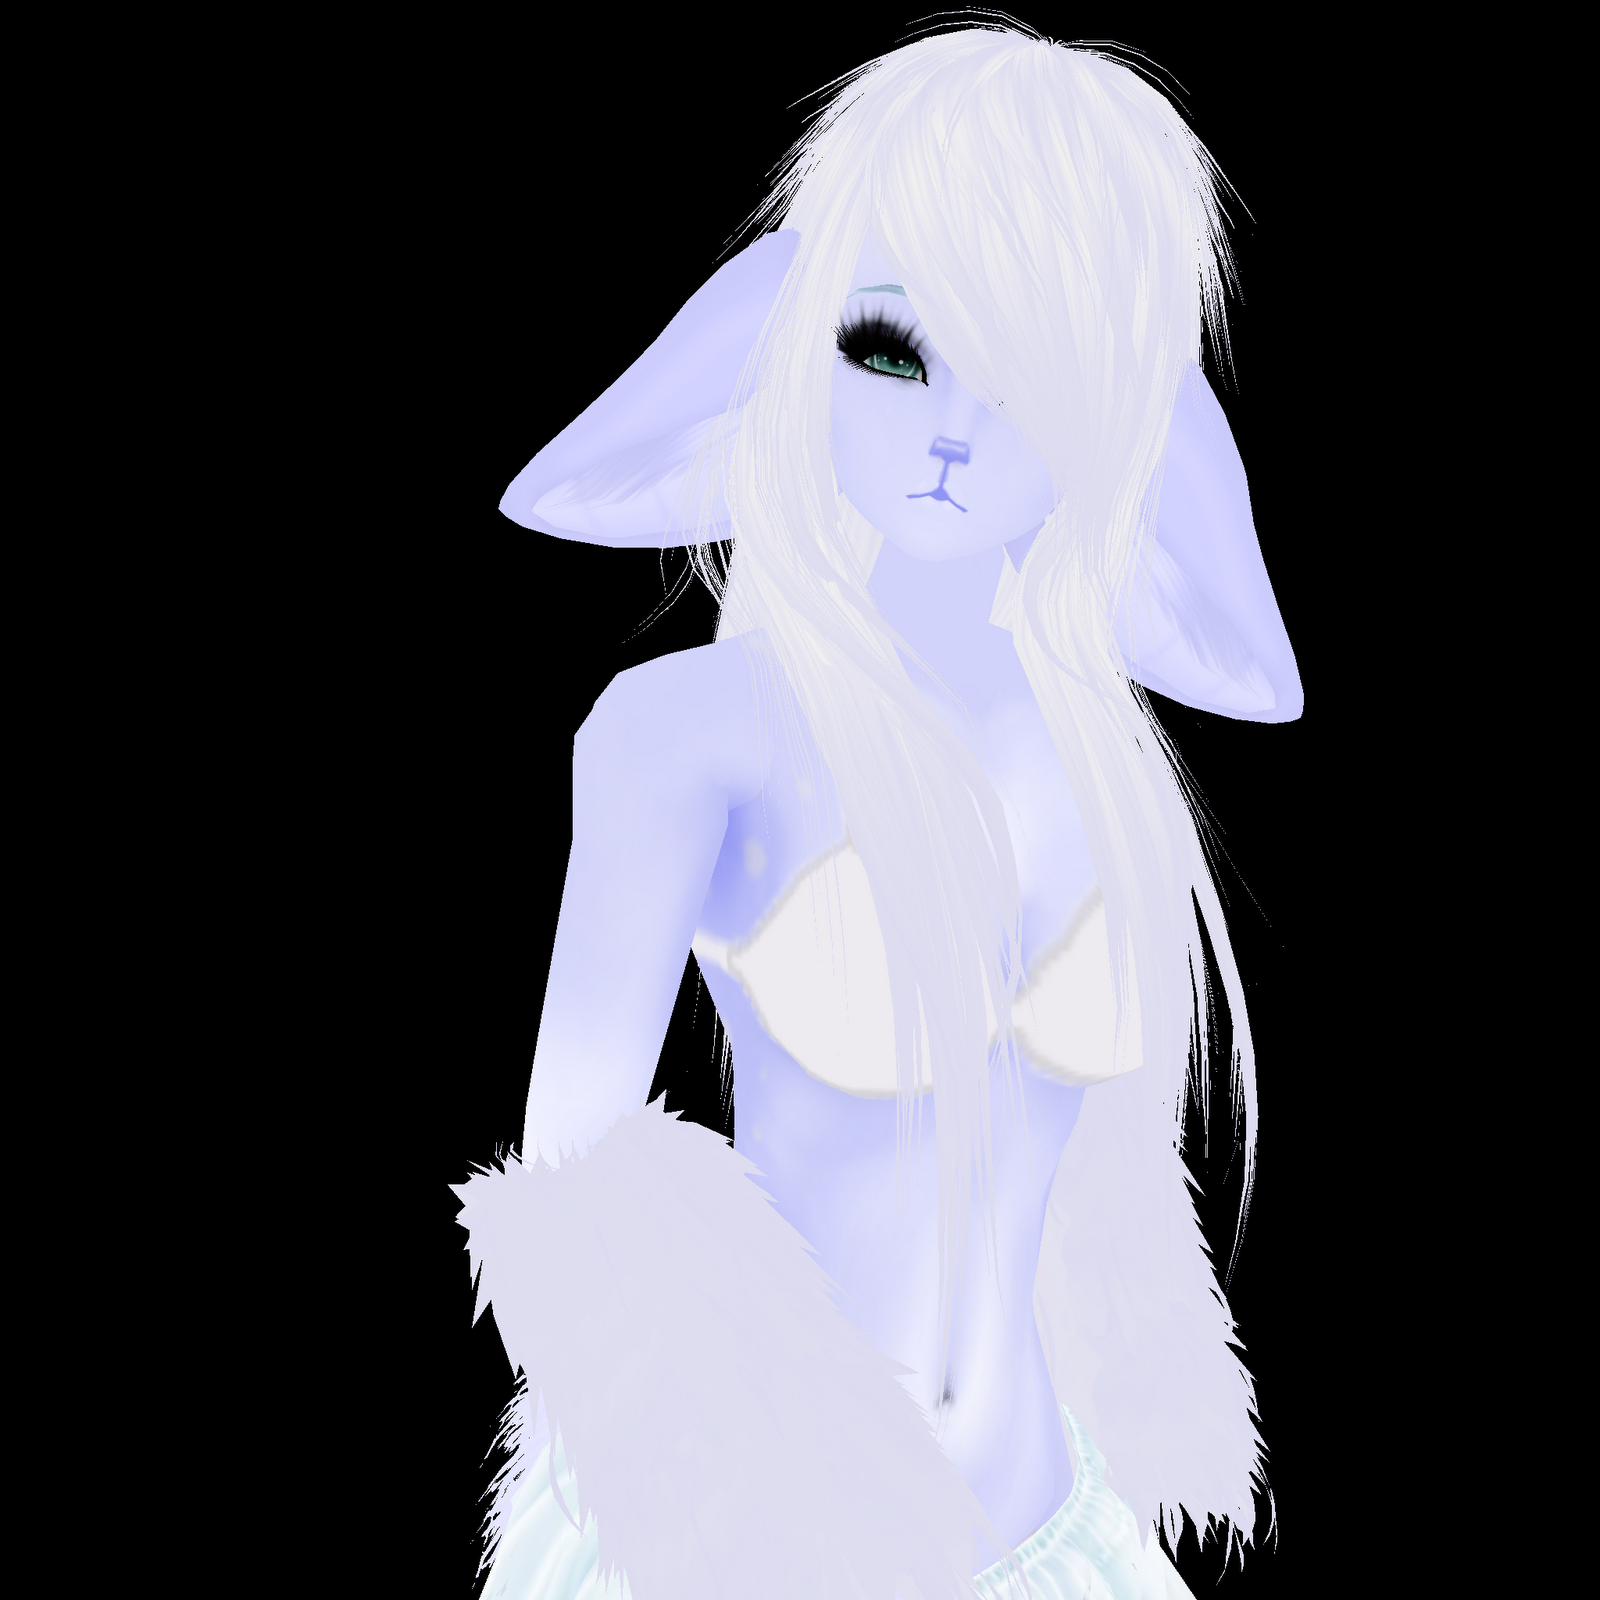 Can look imvu furry porn